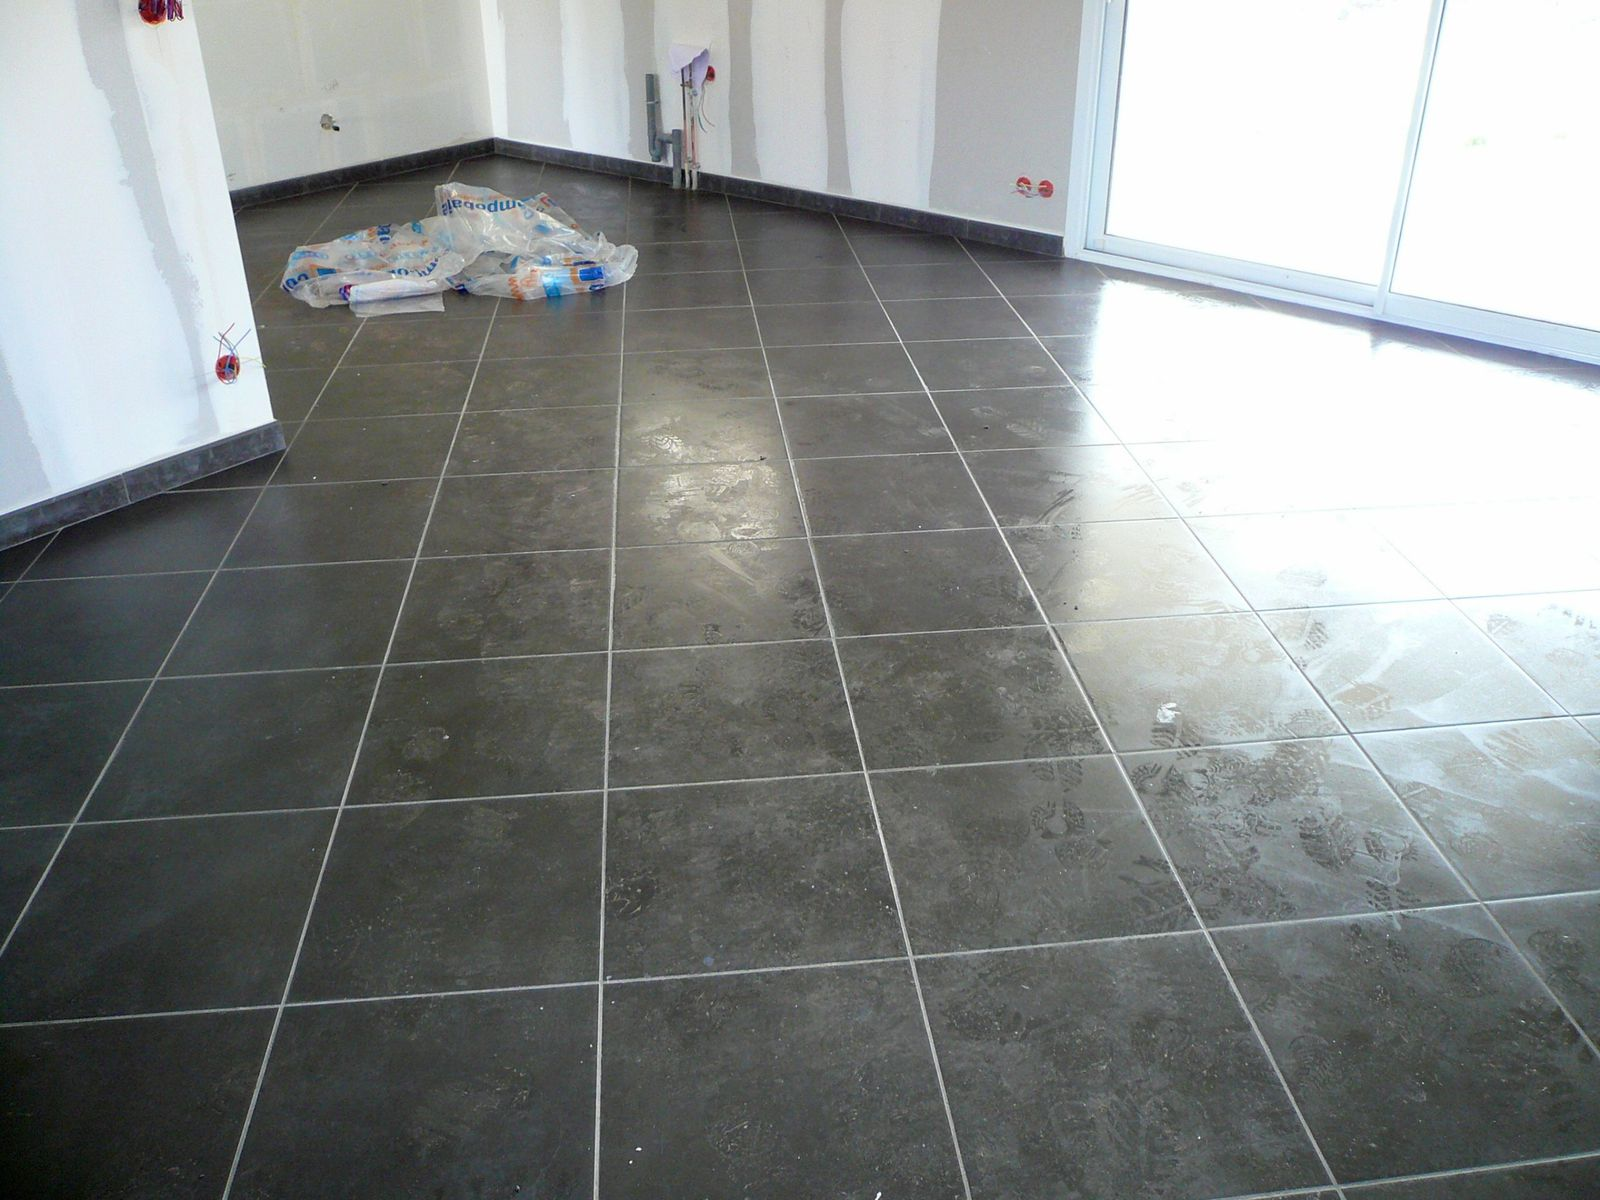 pose de plinthe en carrelage 28 images renovation d